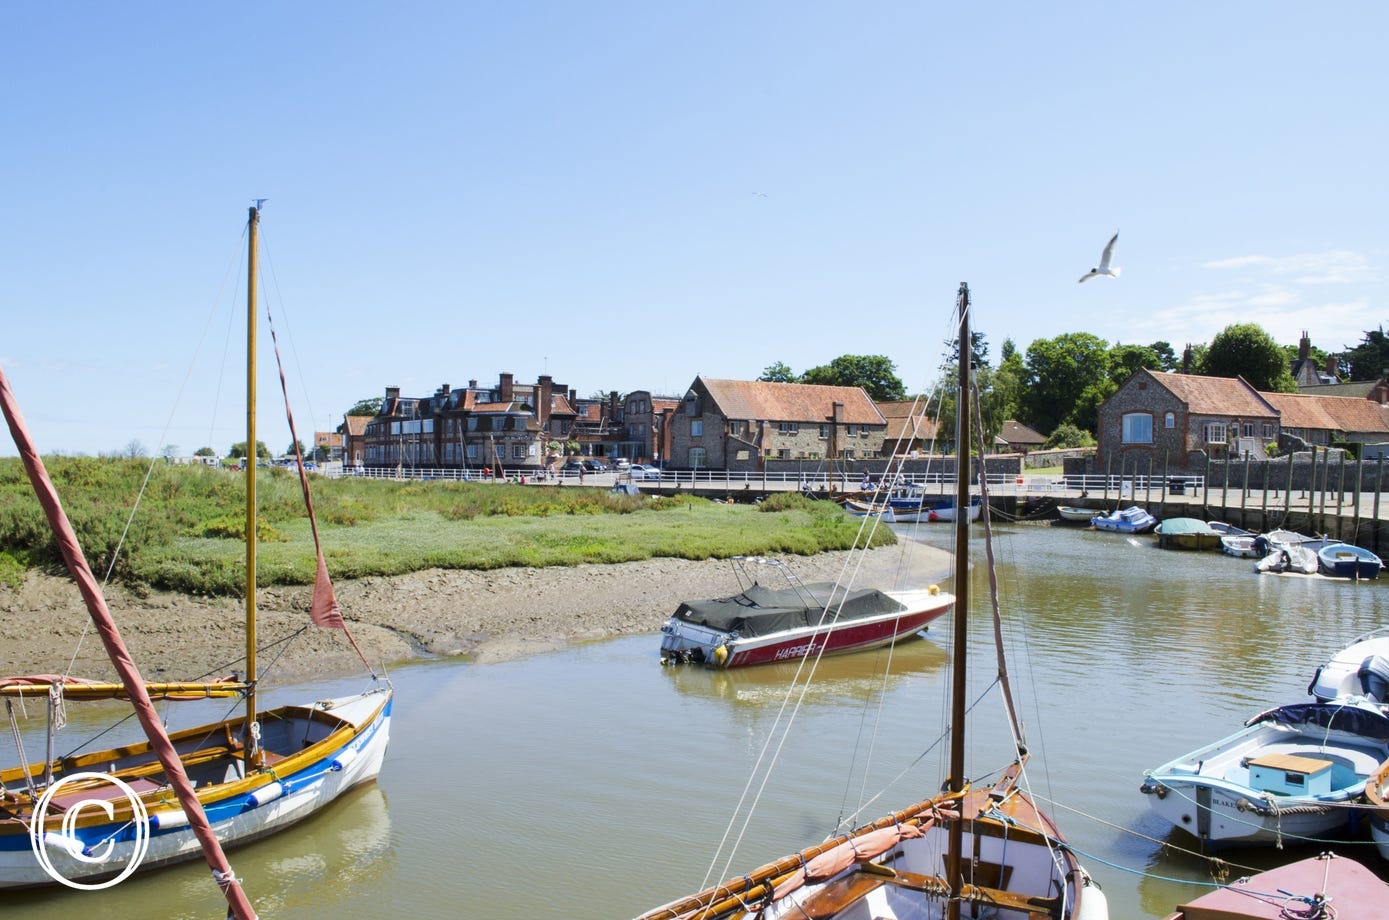 Blakeney Quay which is within walking distance